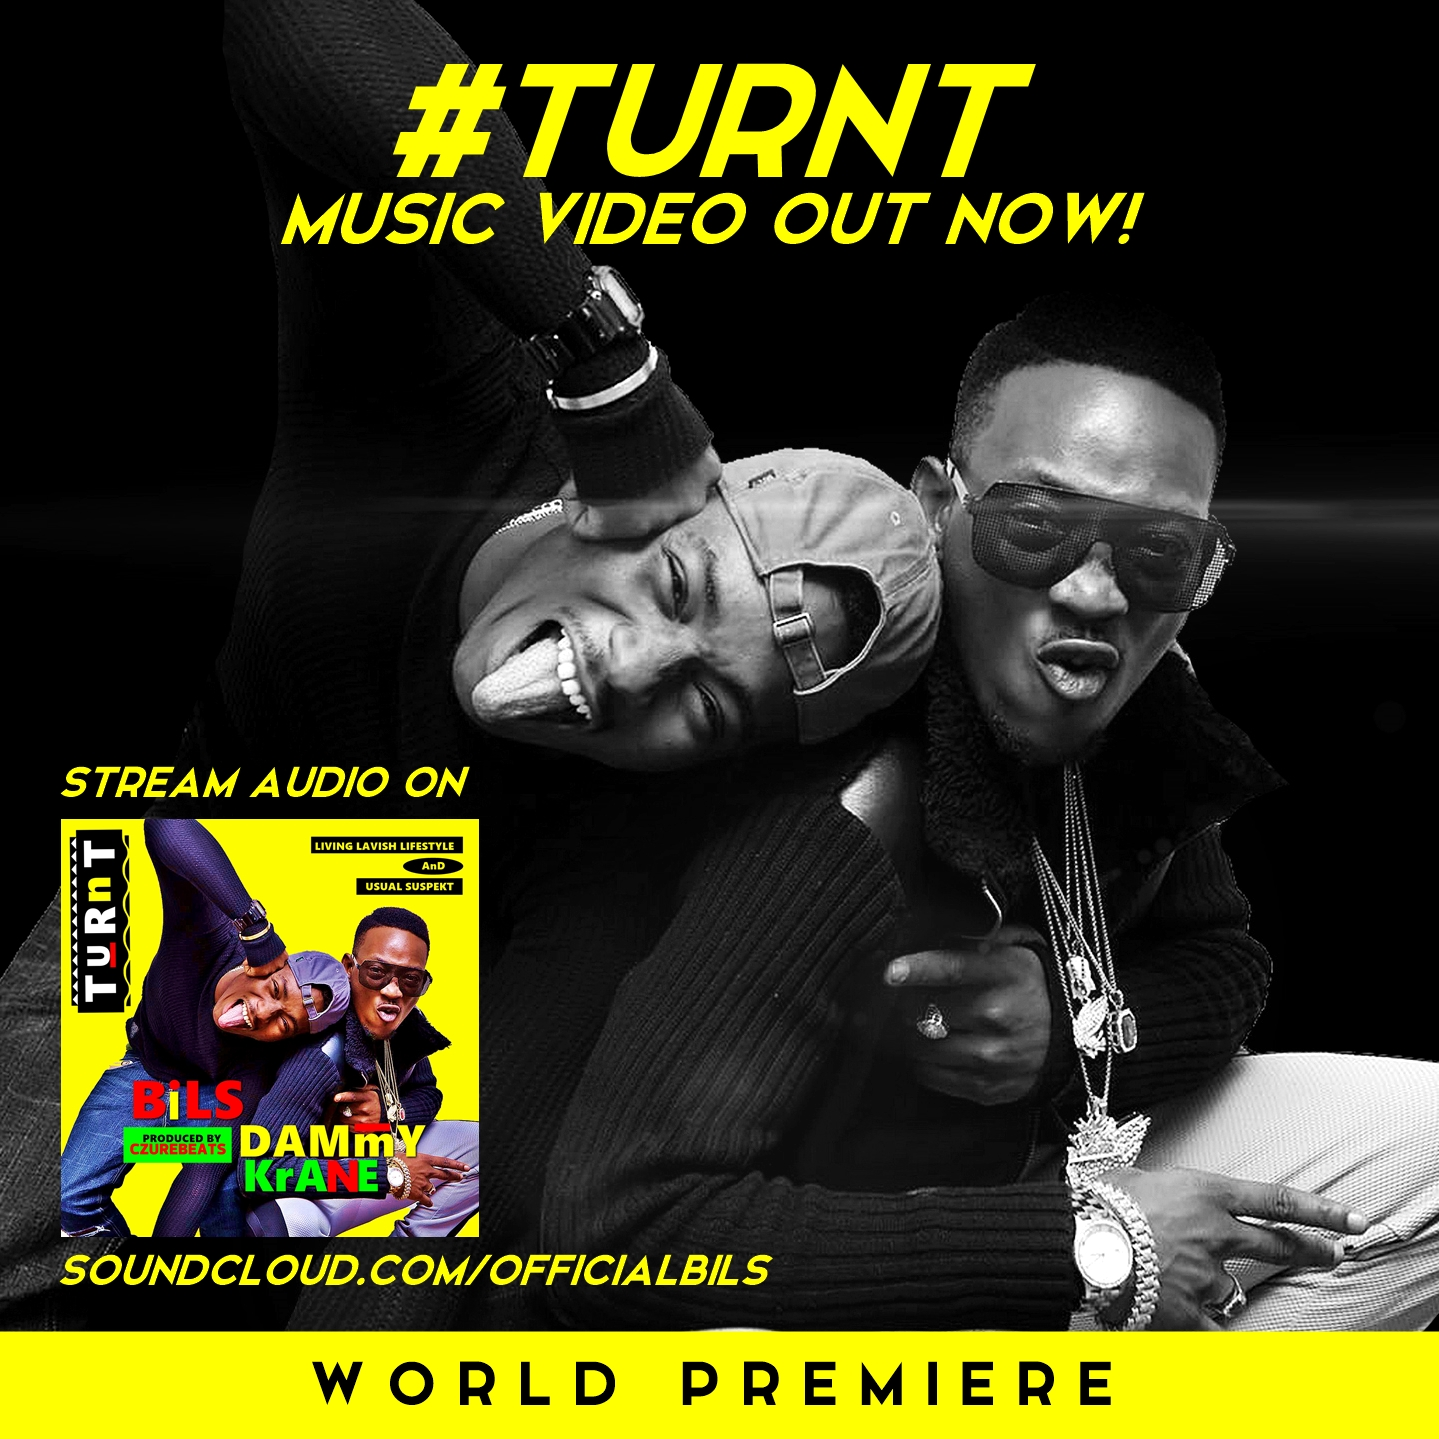 VIDEO: Bils X Dammy Krane - Turn Up